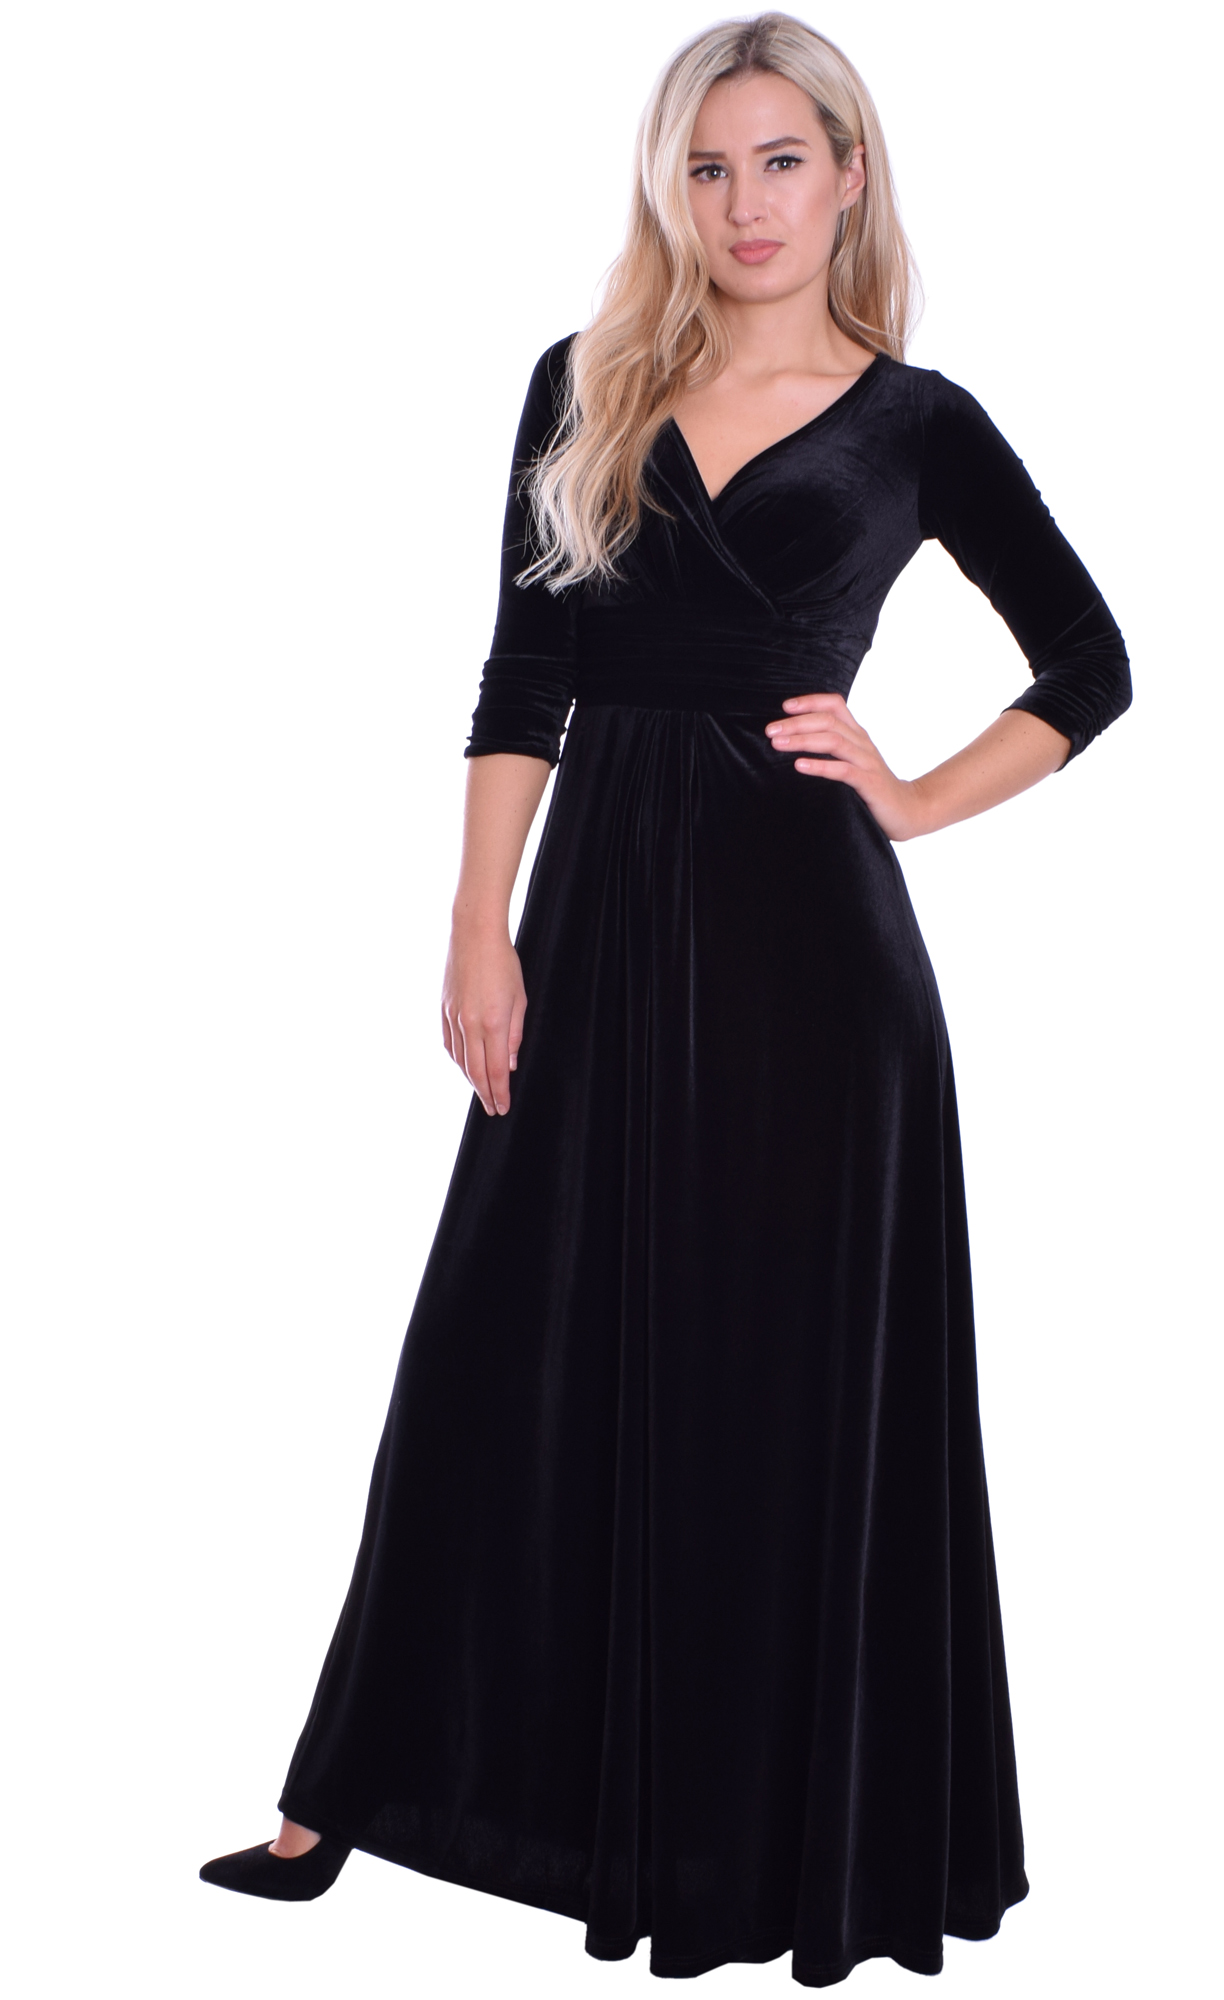 Image for Velvet Dress Black